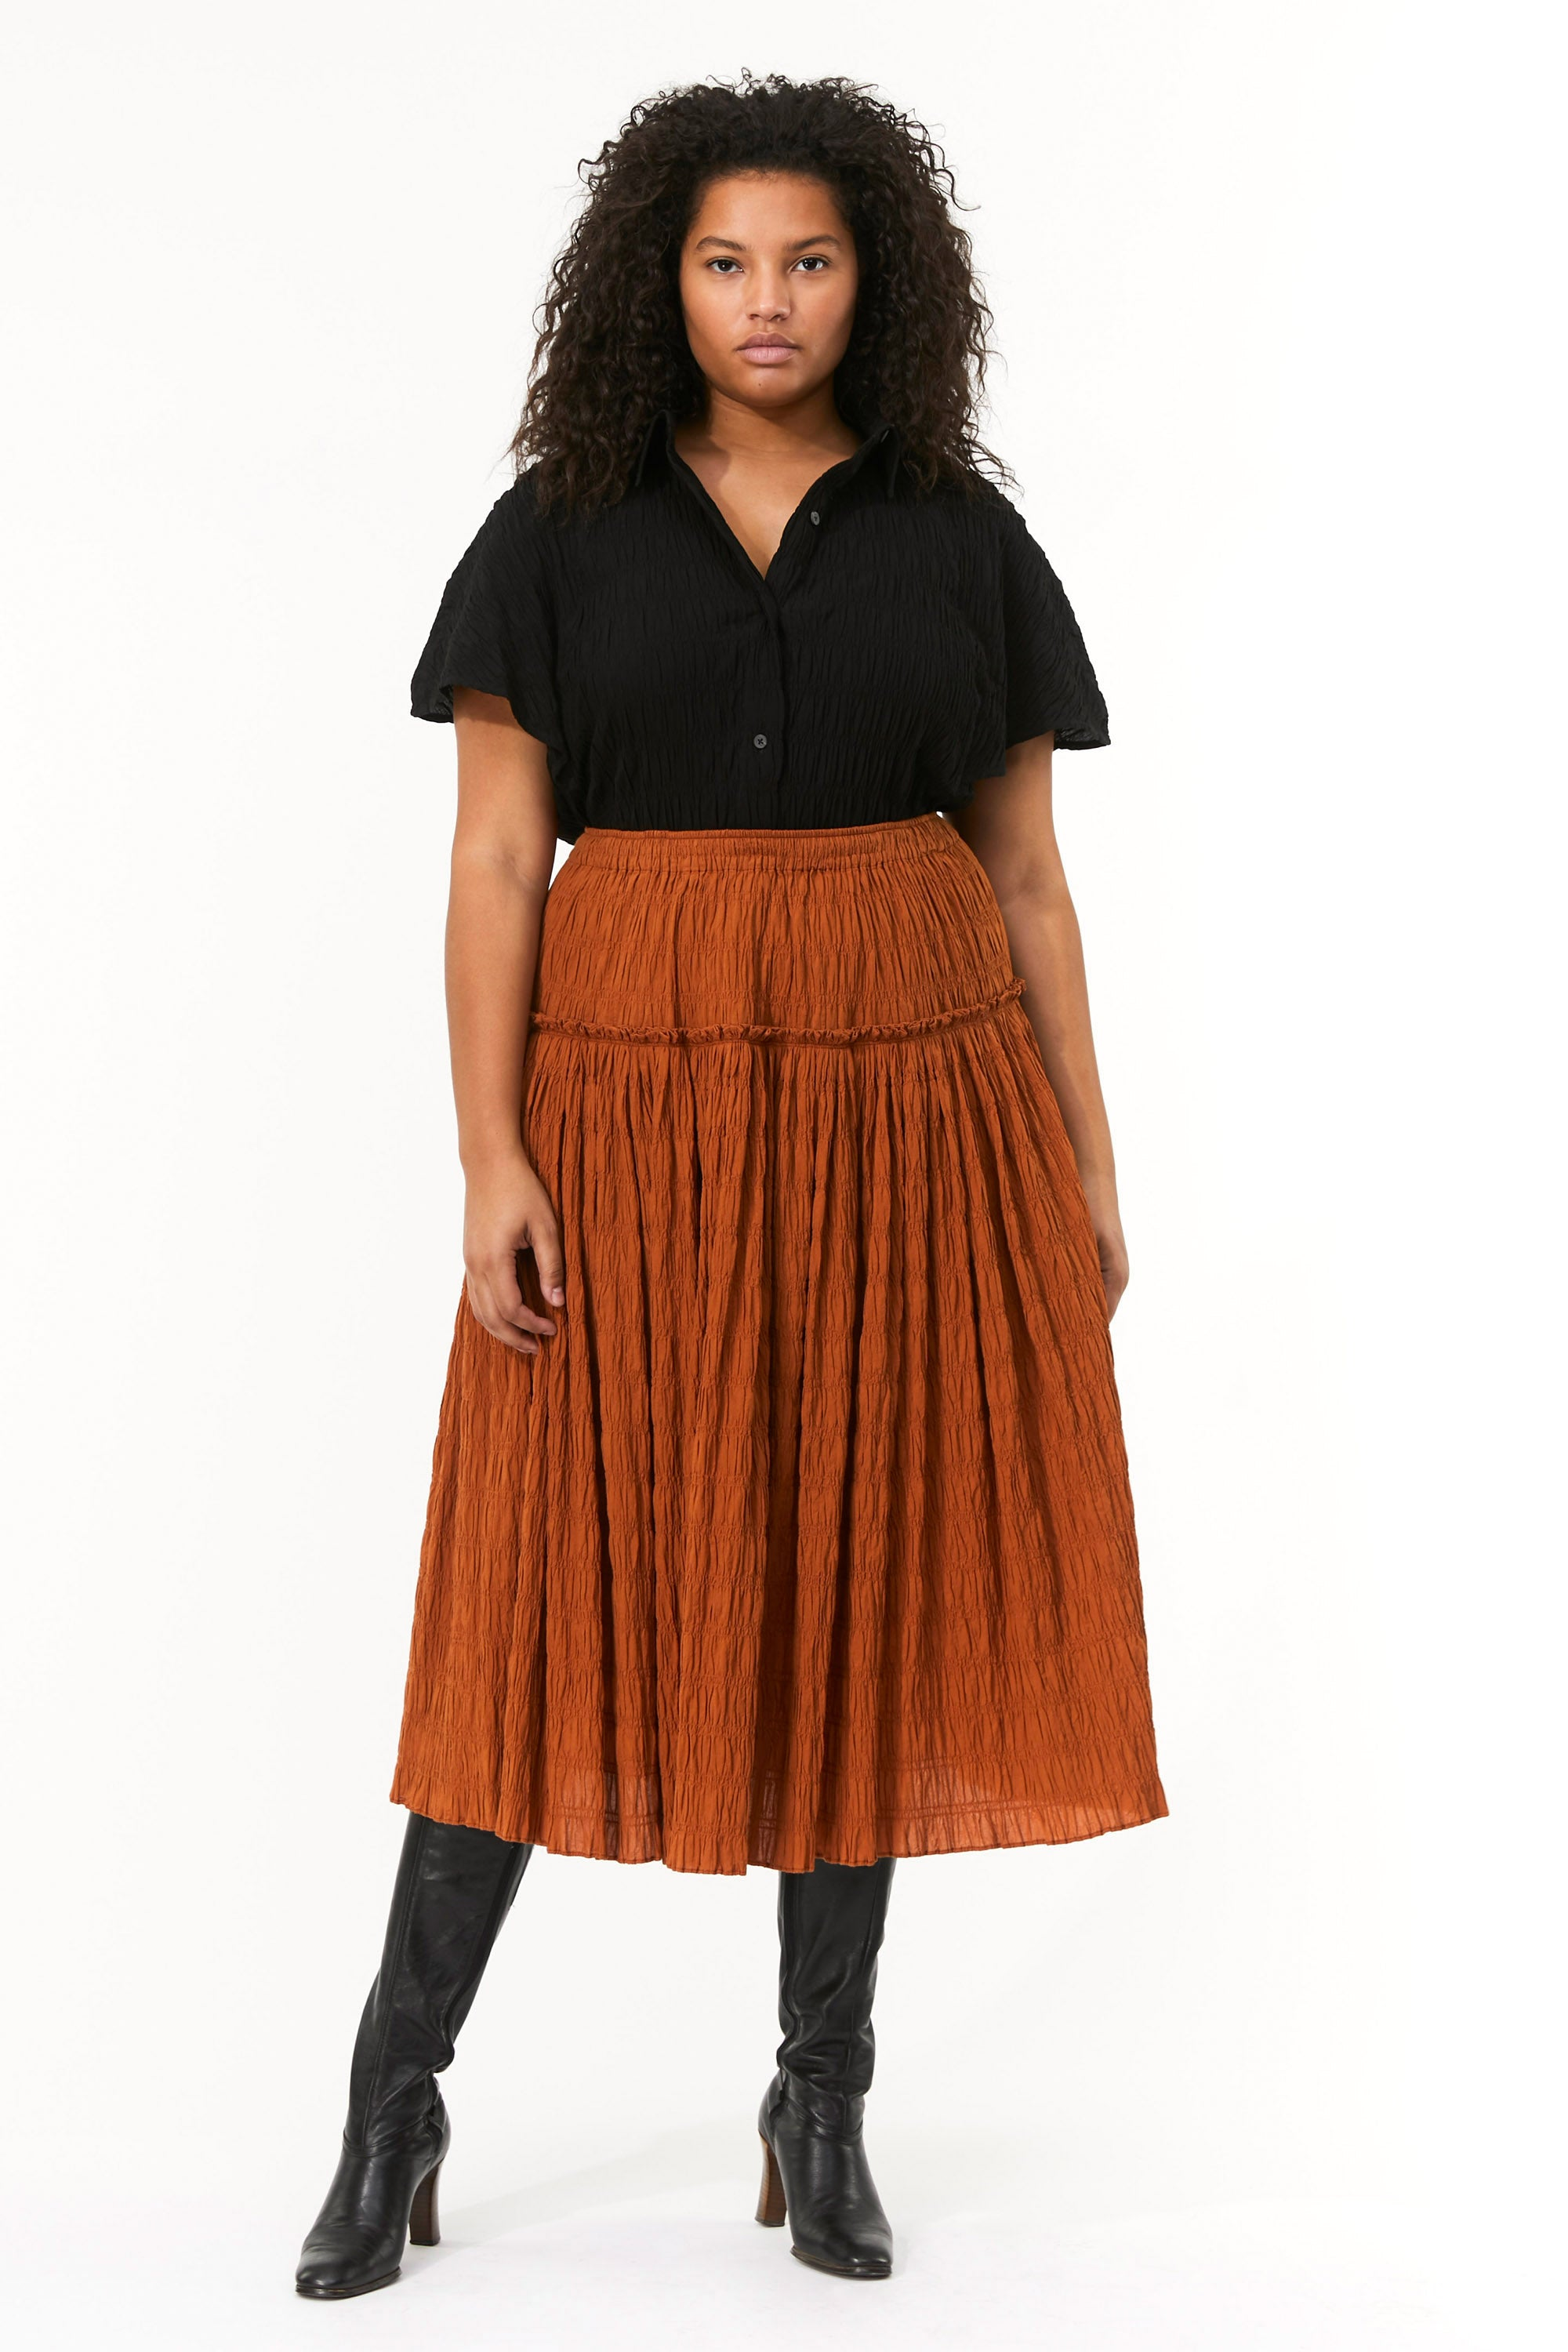 Extended Mara Hoffman Brown Alejandra Skirt in organic cotton (front)